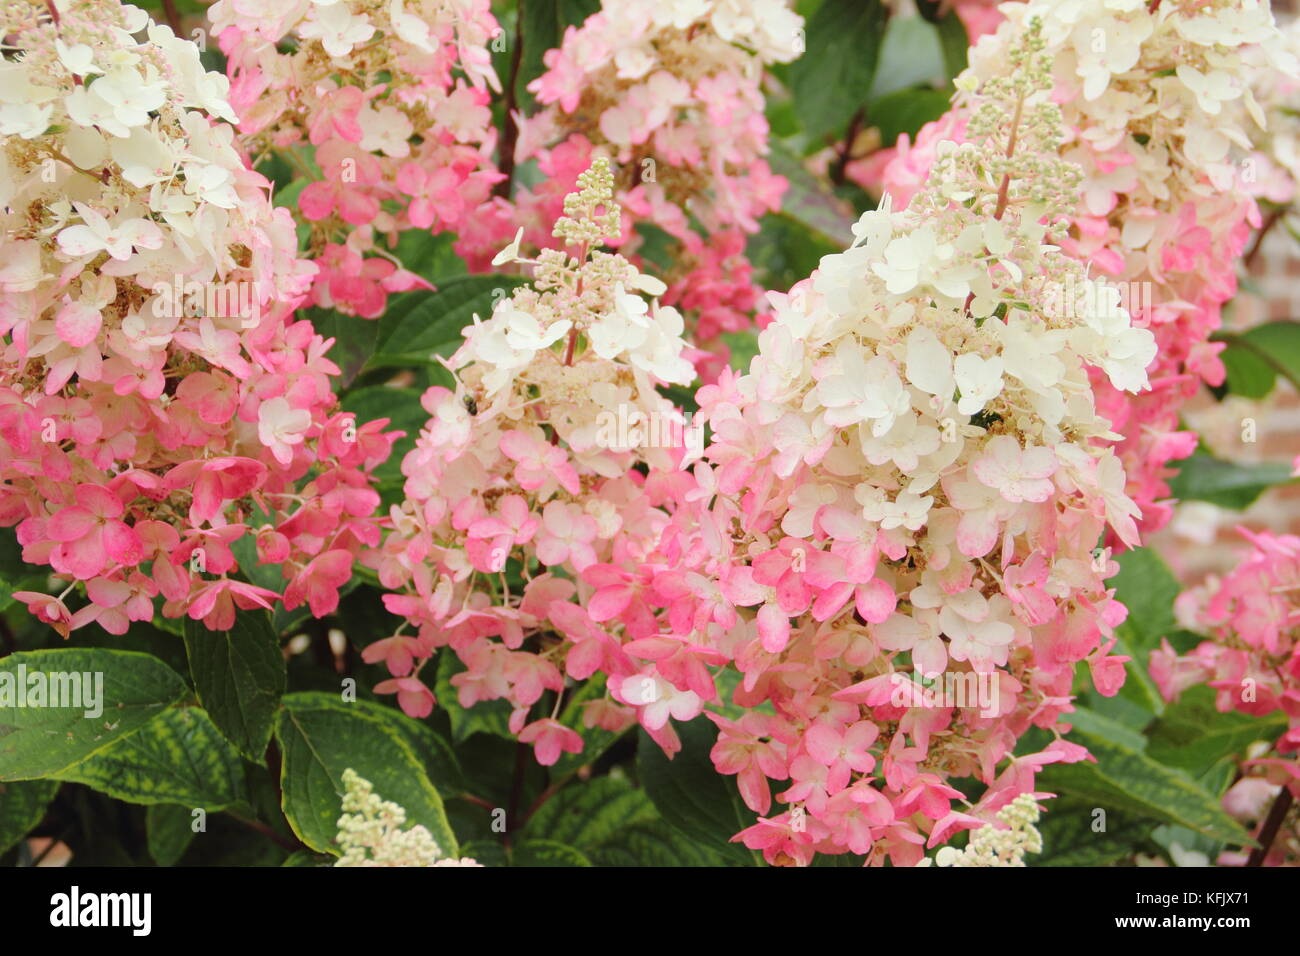 Showy cream and pink flowers (panicles) of Hydrangea paniculata 'Pinky Winky blooming in an English garden in - Stock Image